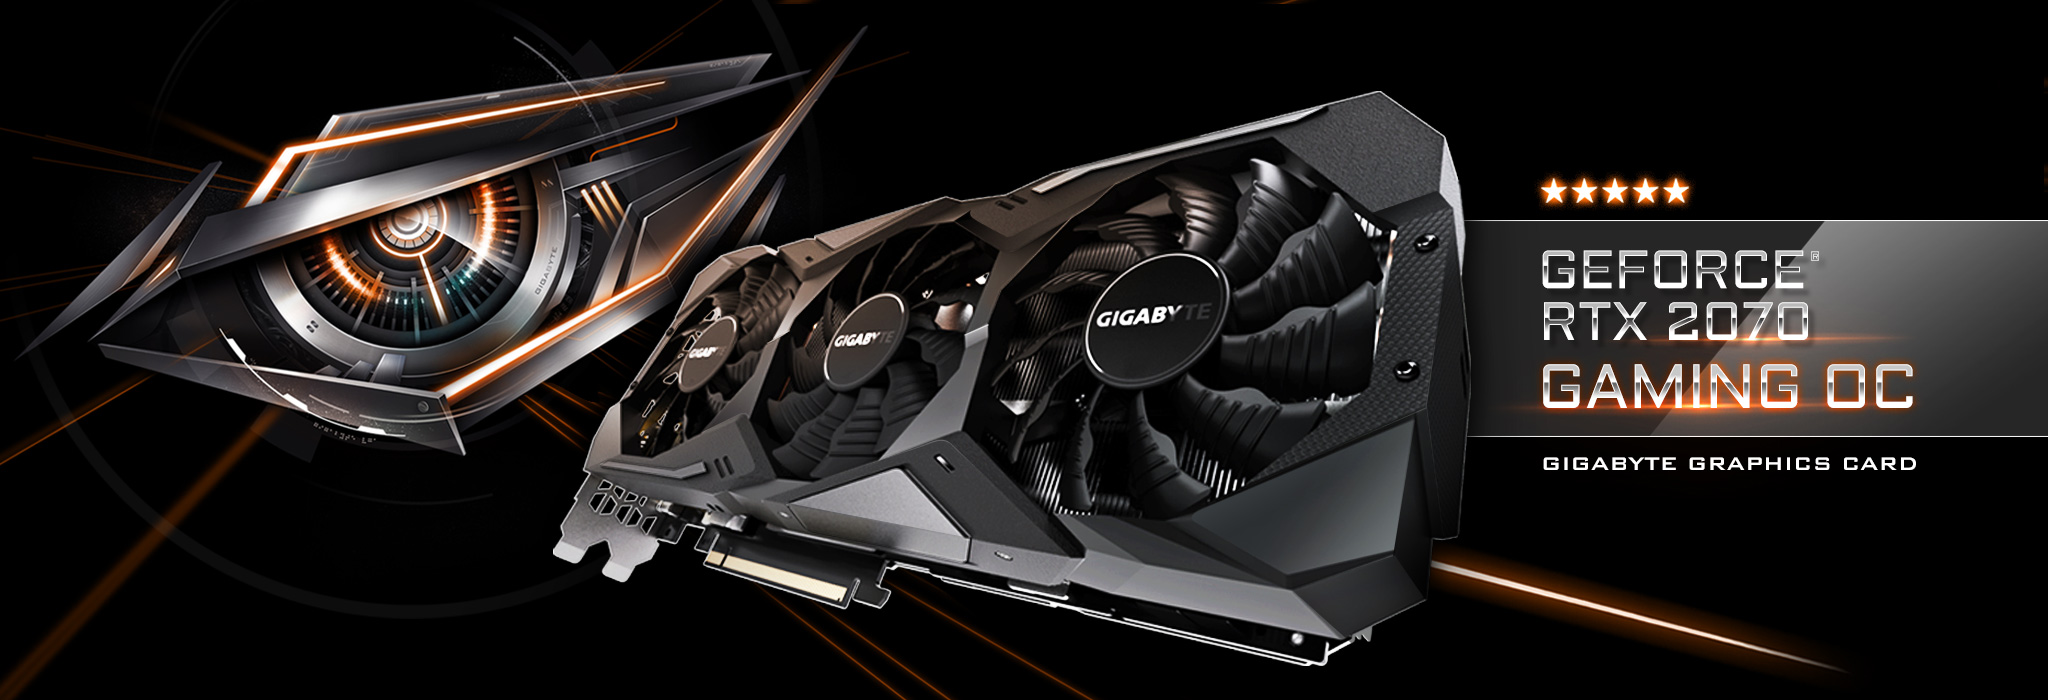 GeForce RTX™ 2070 GAMING OC 8G | Graphics Card - GIGABYTE Global